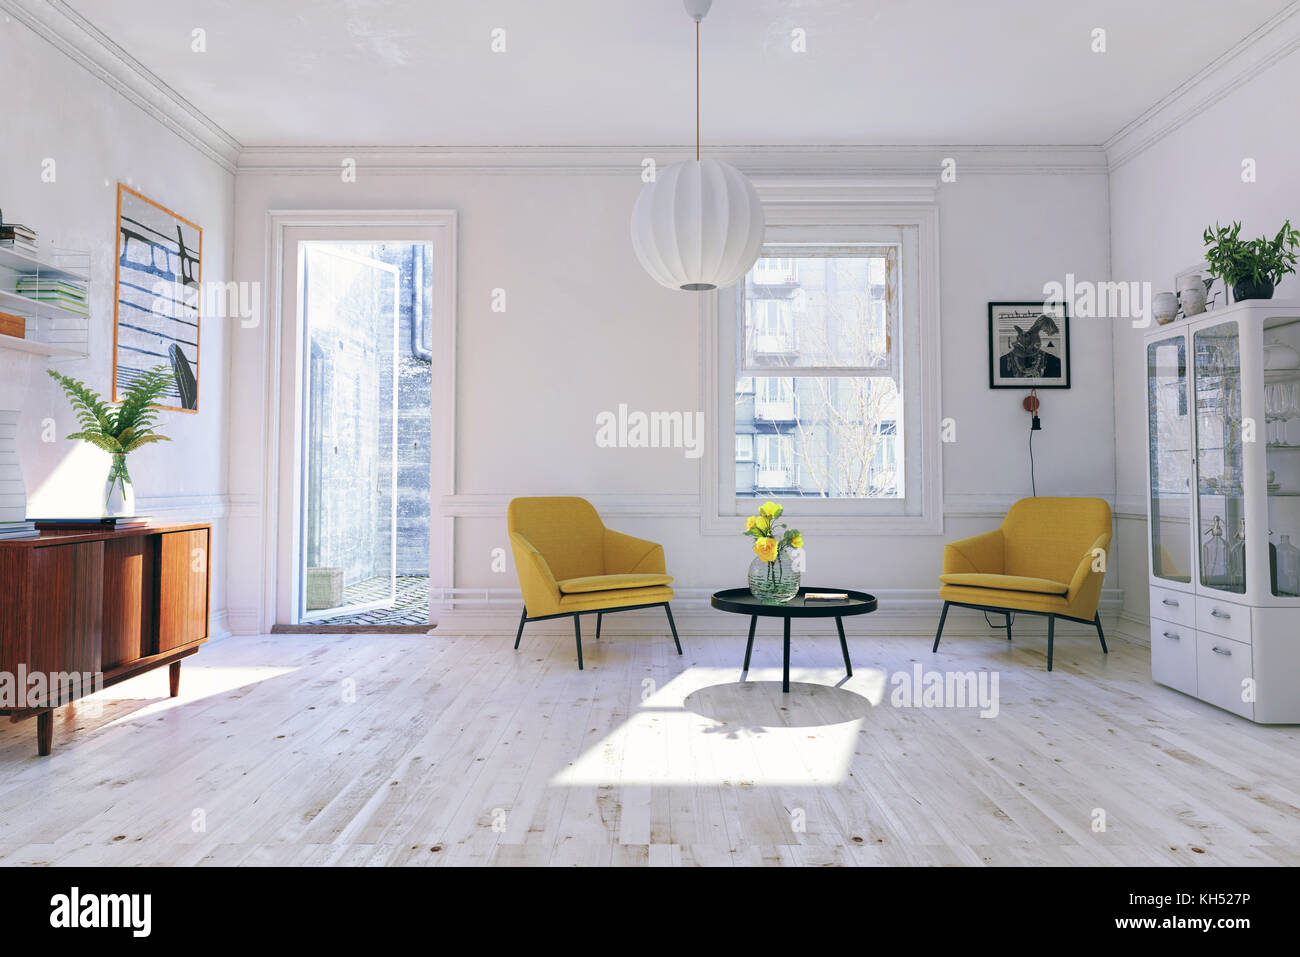 The Modern interior. Scandinavian design style. 3d rendering illustration concept - Stock Image